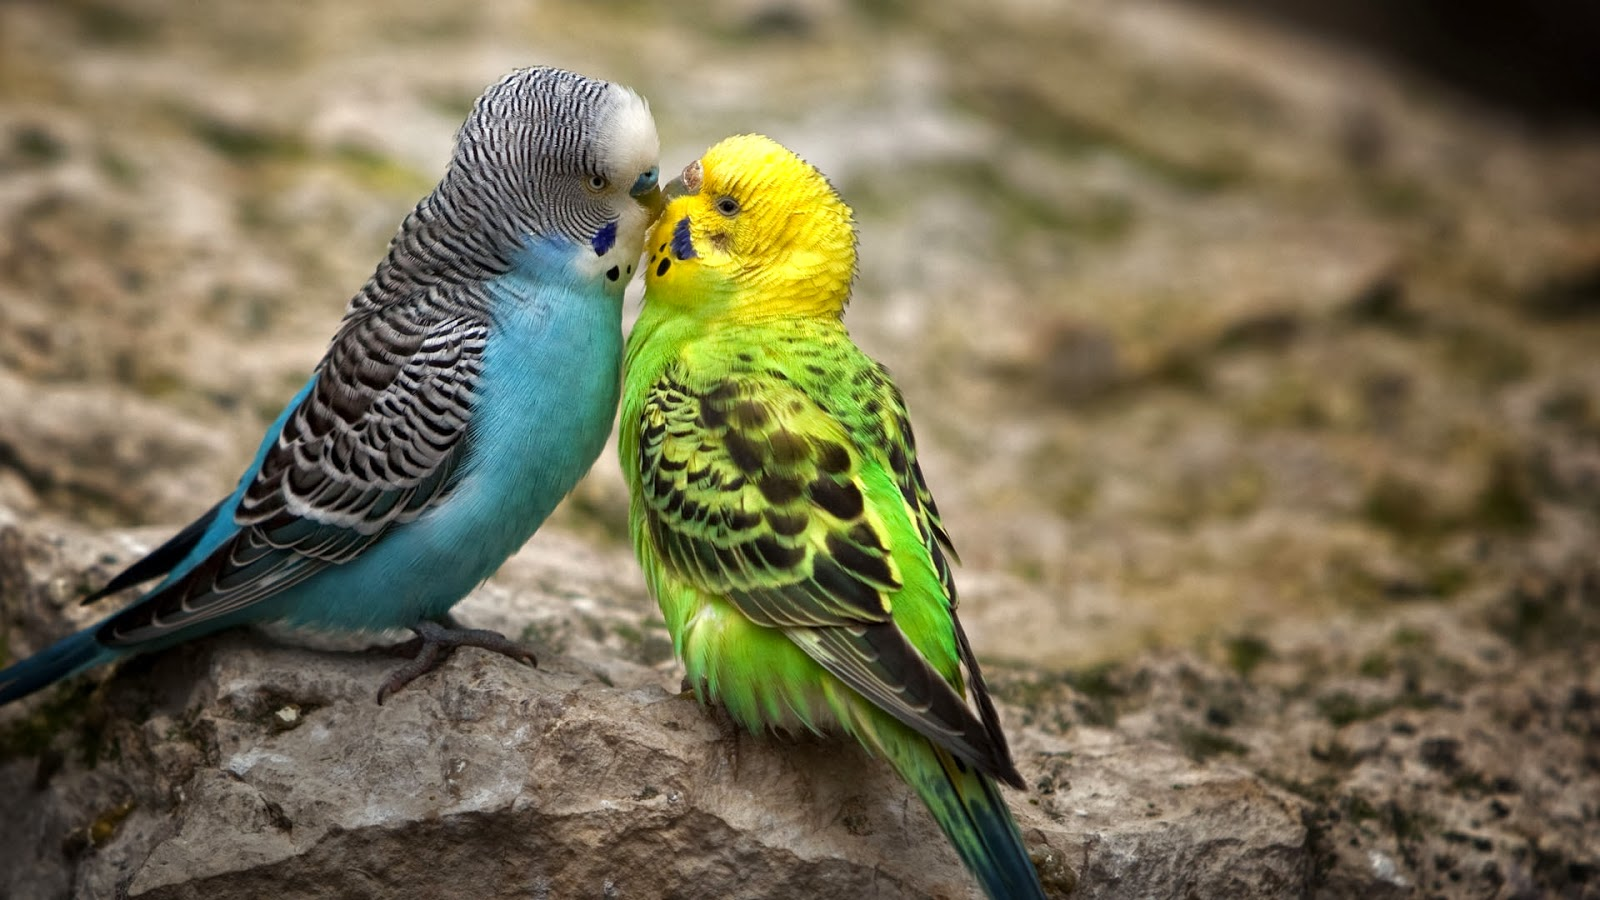 Love-birds-HD-wallpaper-photos.jpg